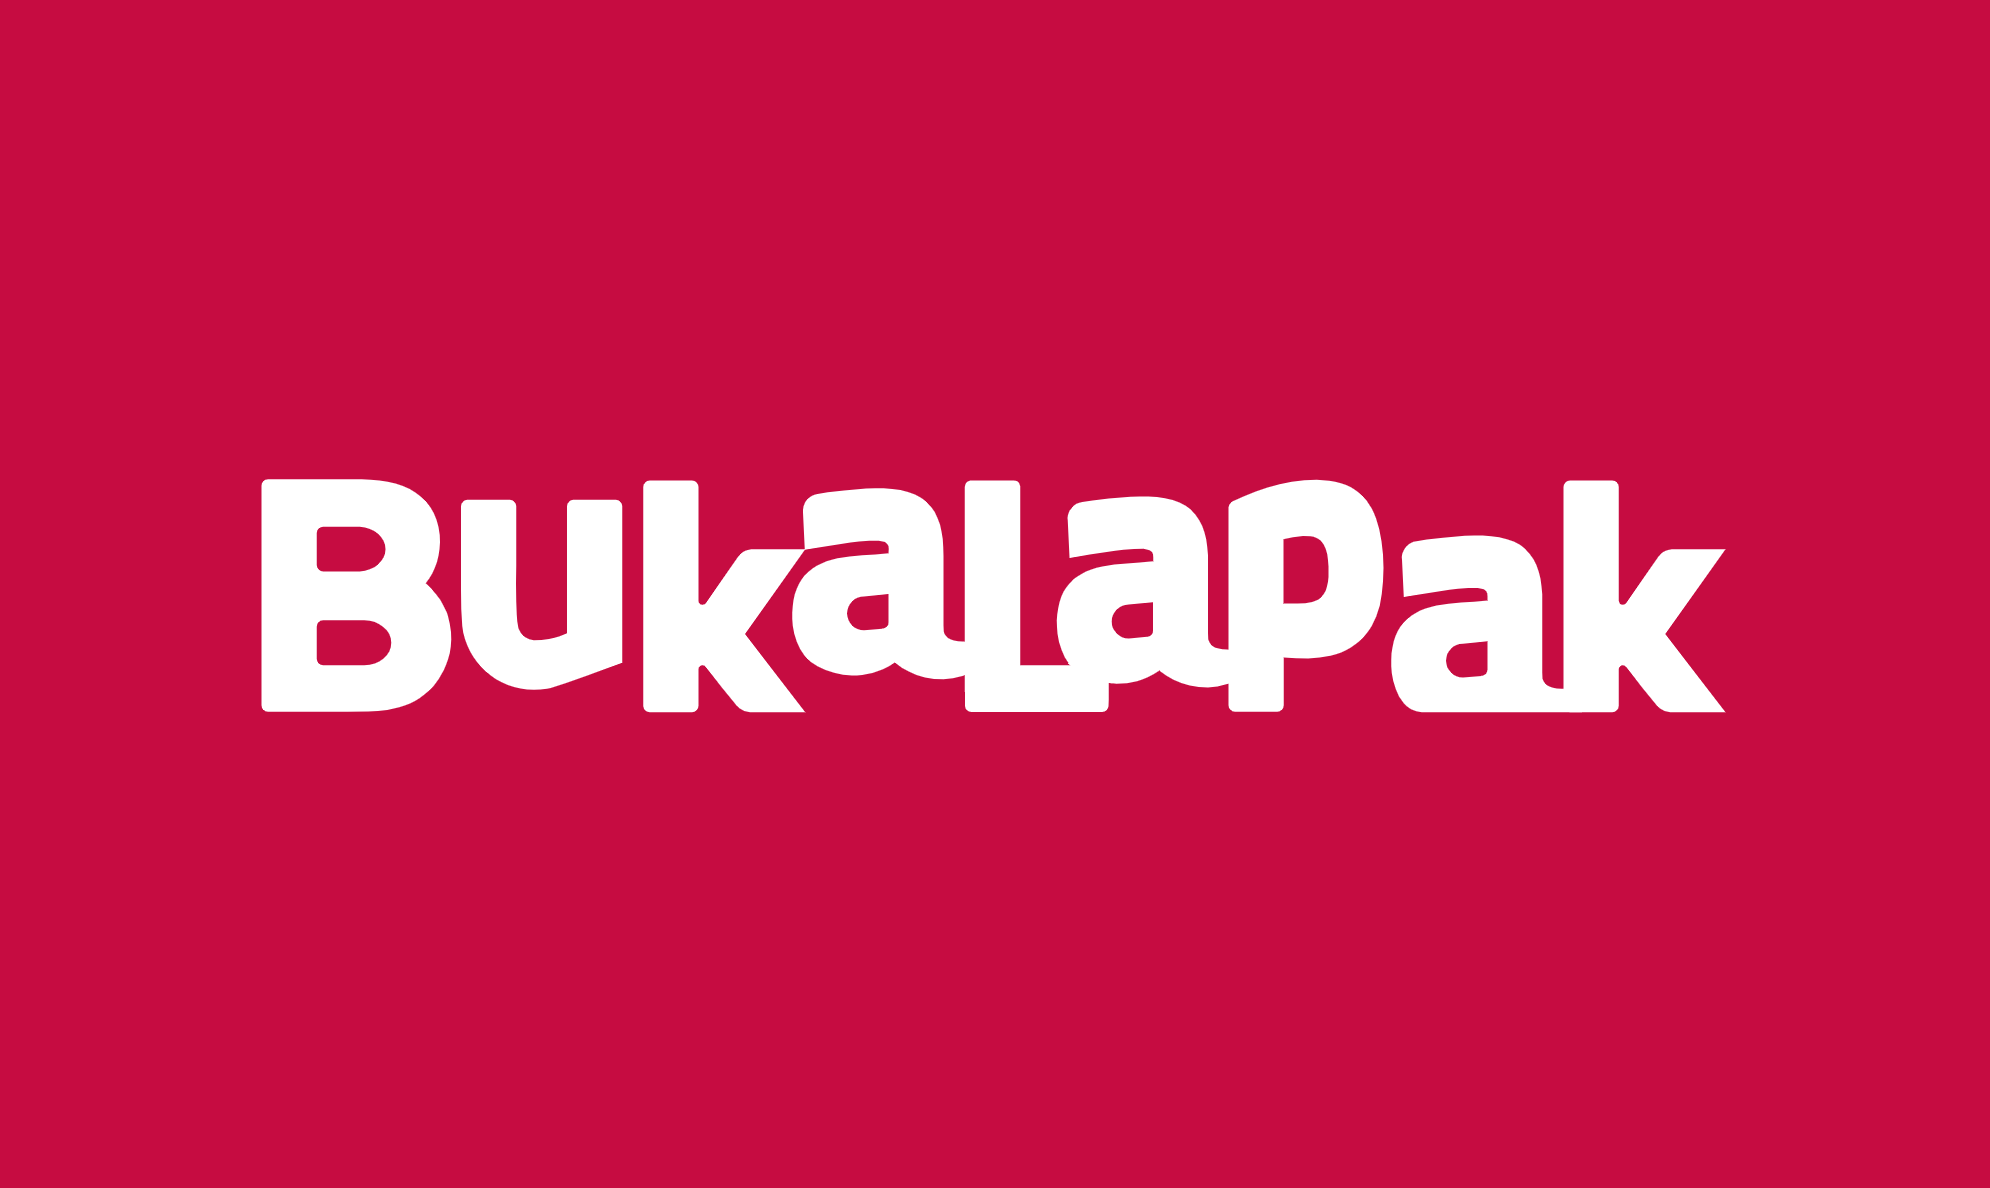 Bukalapak's seed round pitch deck